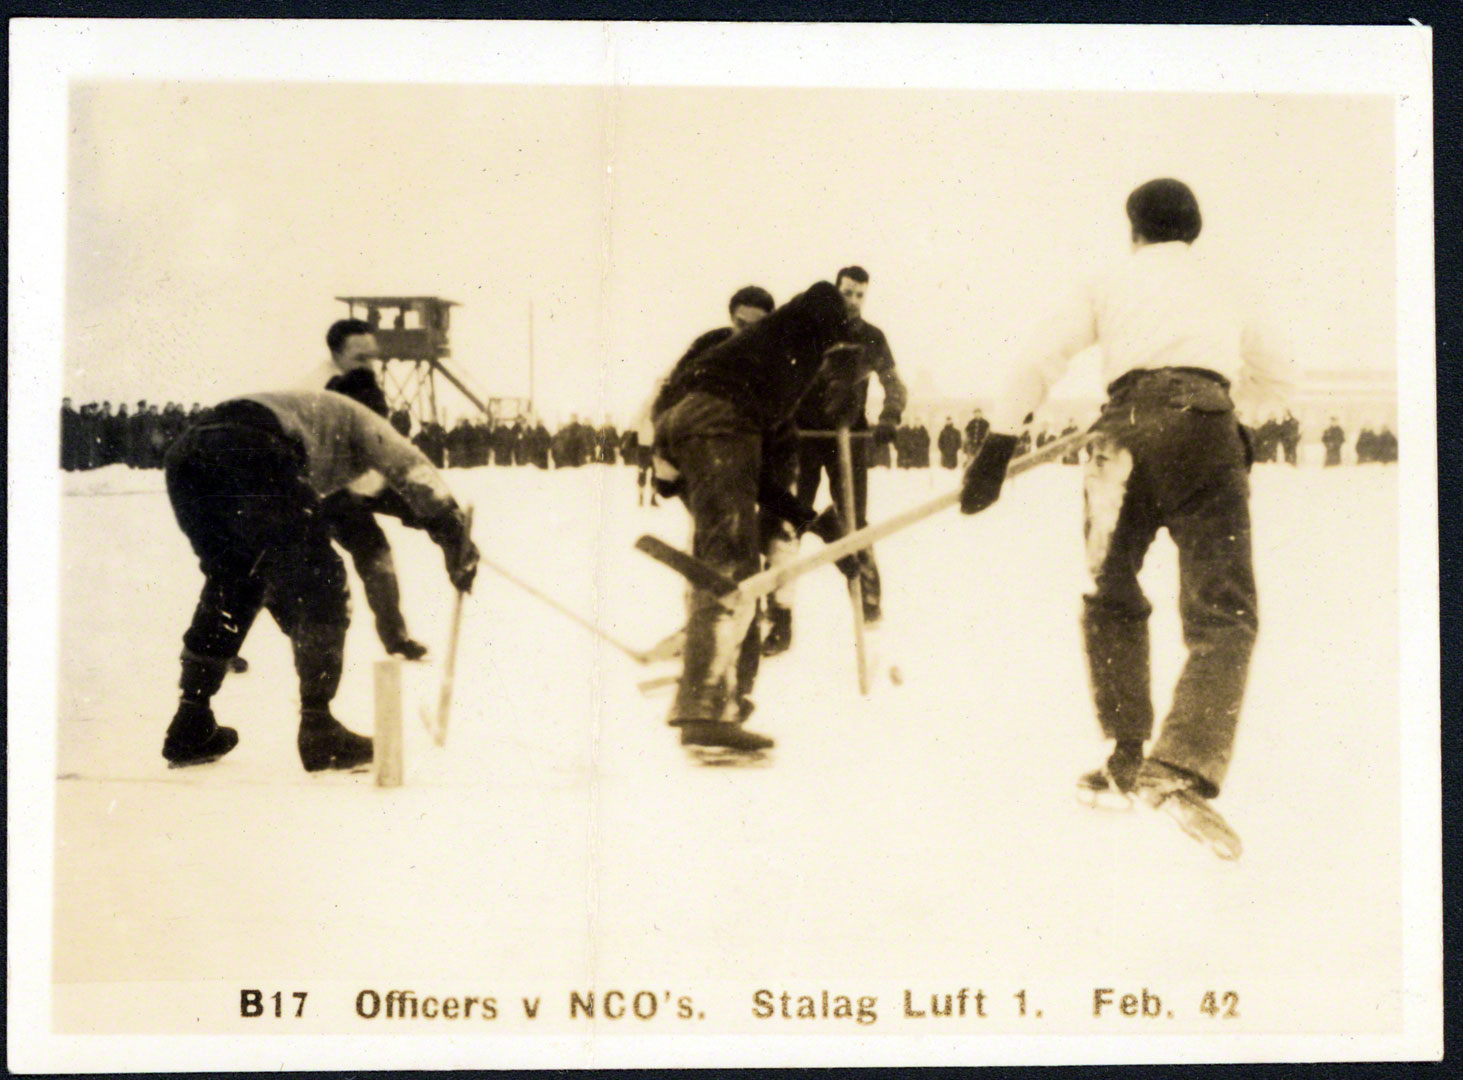 Officer vs NCOs at Stalag Luft I